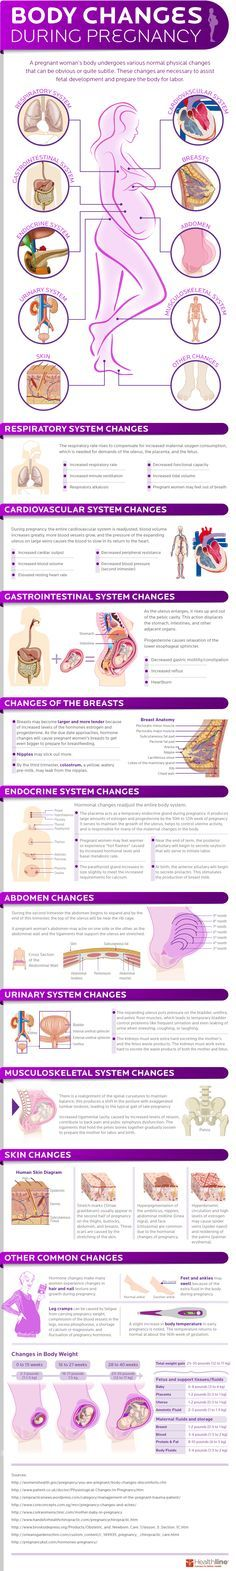 BODY CHANGES DURING PREGNANCY This infographic covers all of the changes that take place throughout the body during pregnancy.